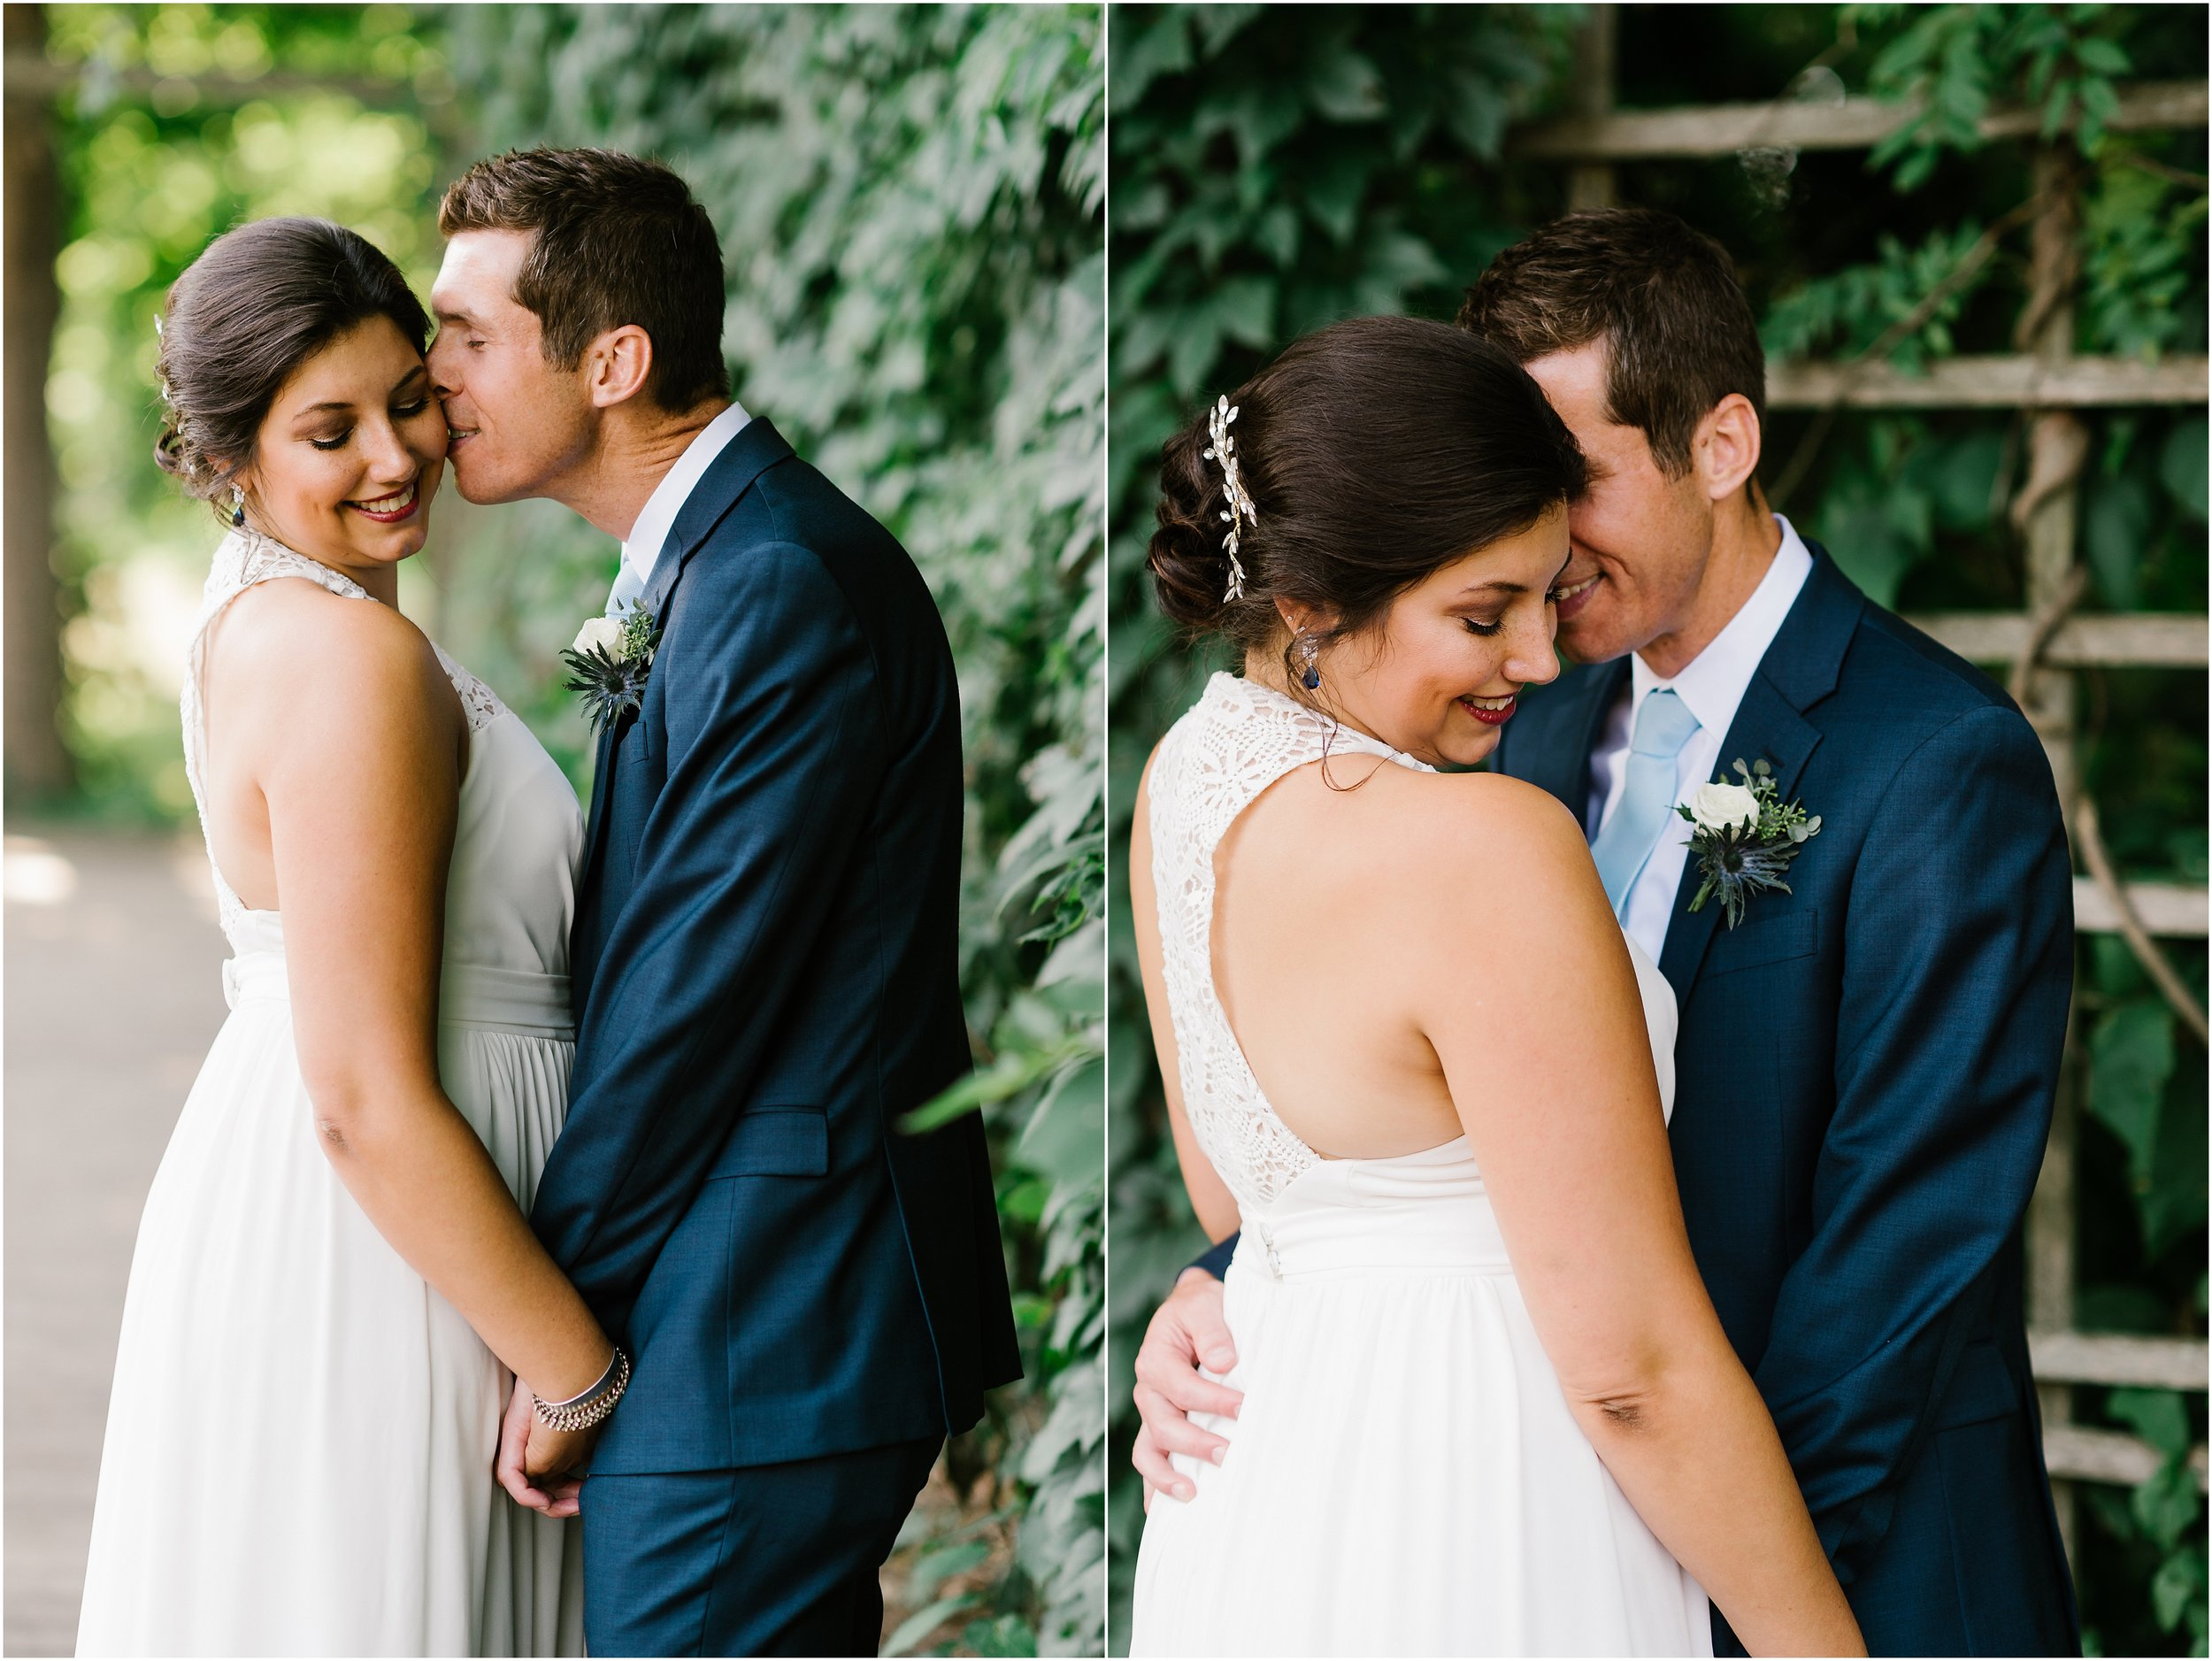 Rebecca Shehorn Photography Indianapolis Wedding Photographer Just Pop In Wedding_0643.jpg